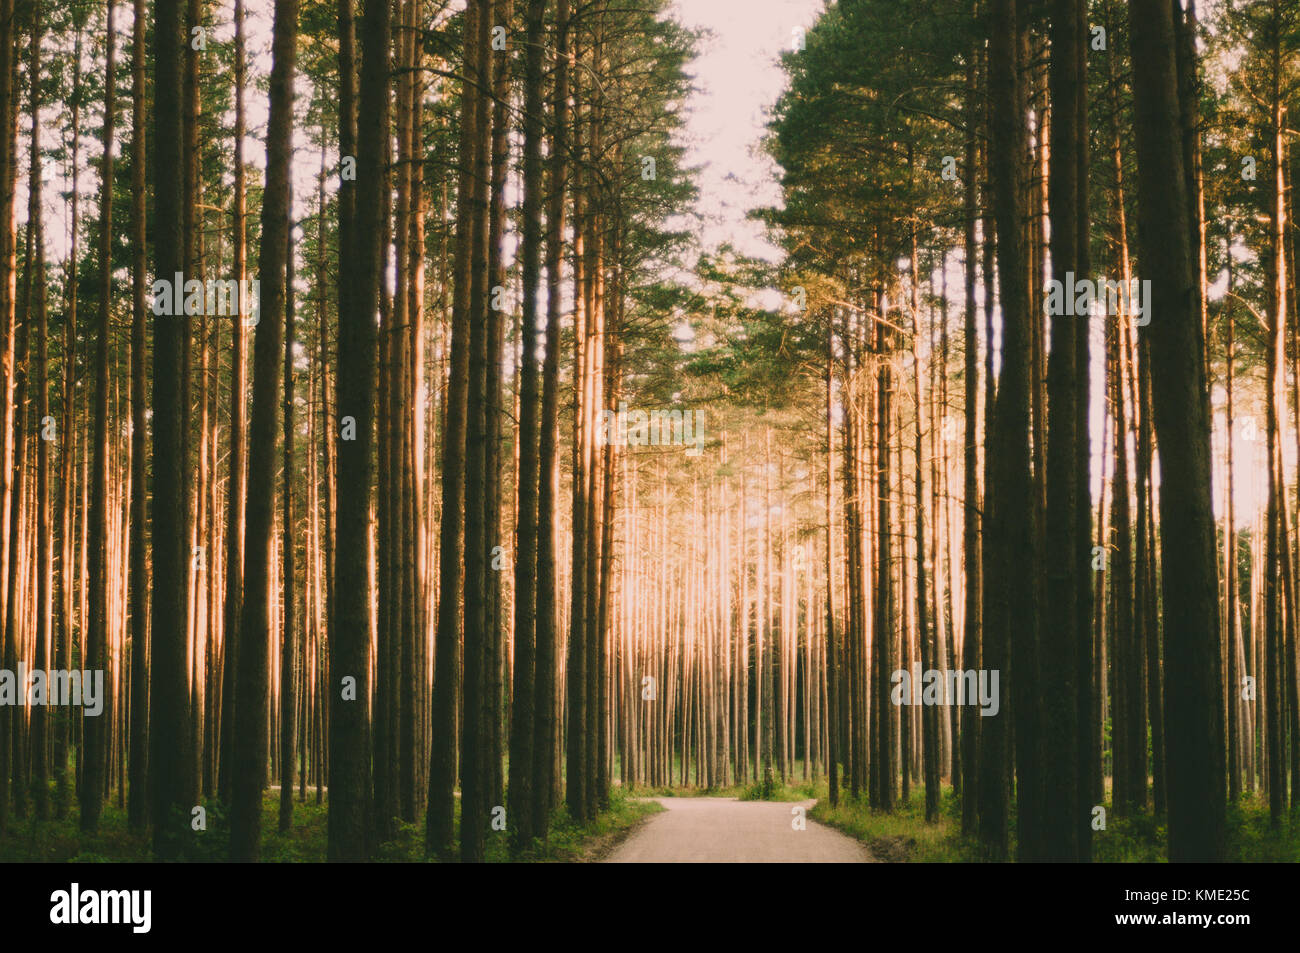 Road trough the pine forest with sun rays. - Stock Image